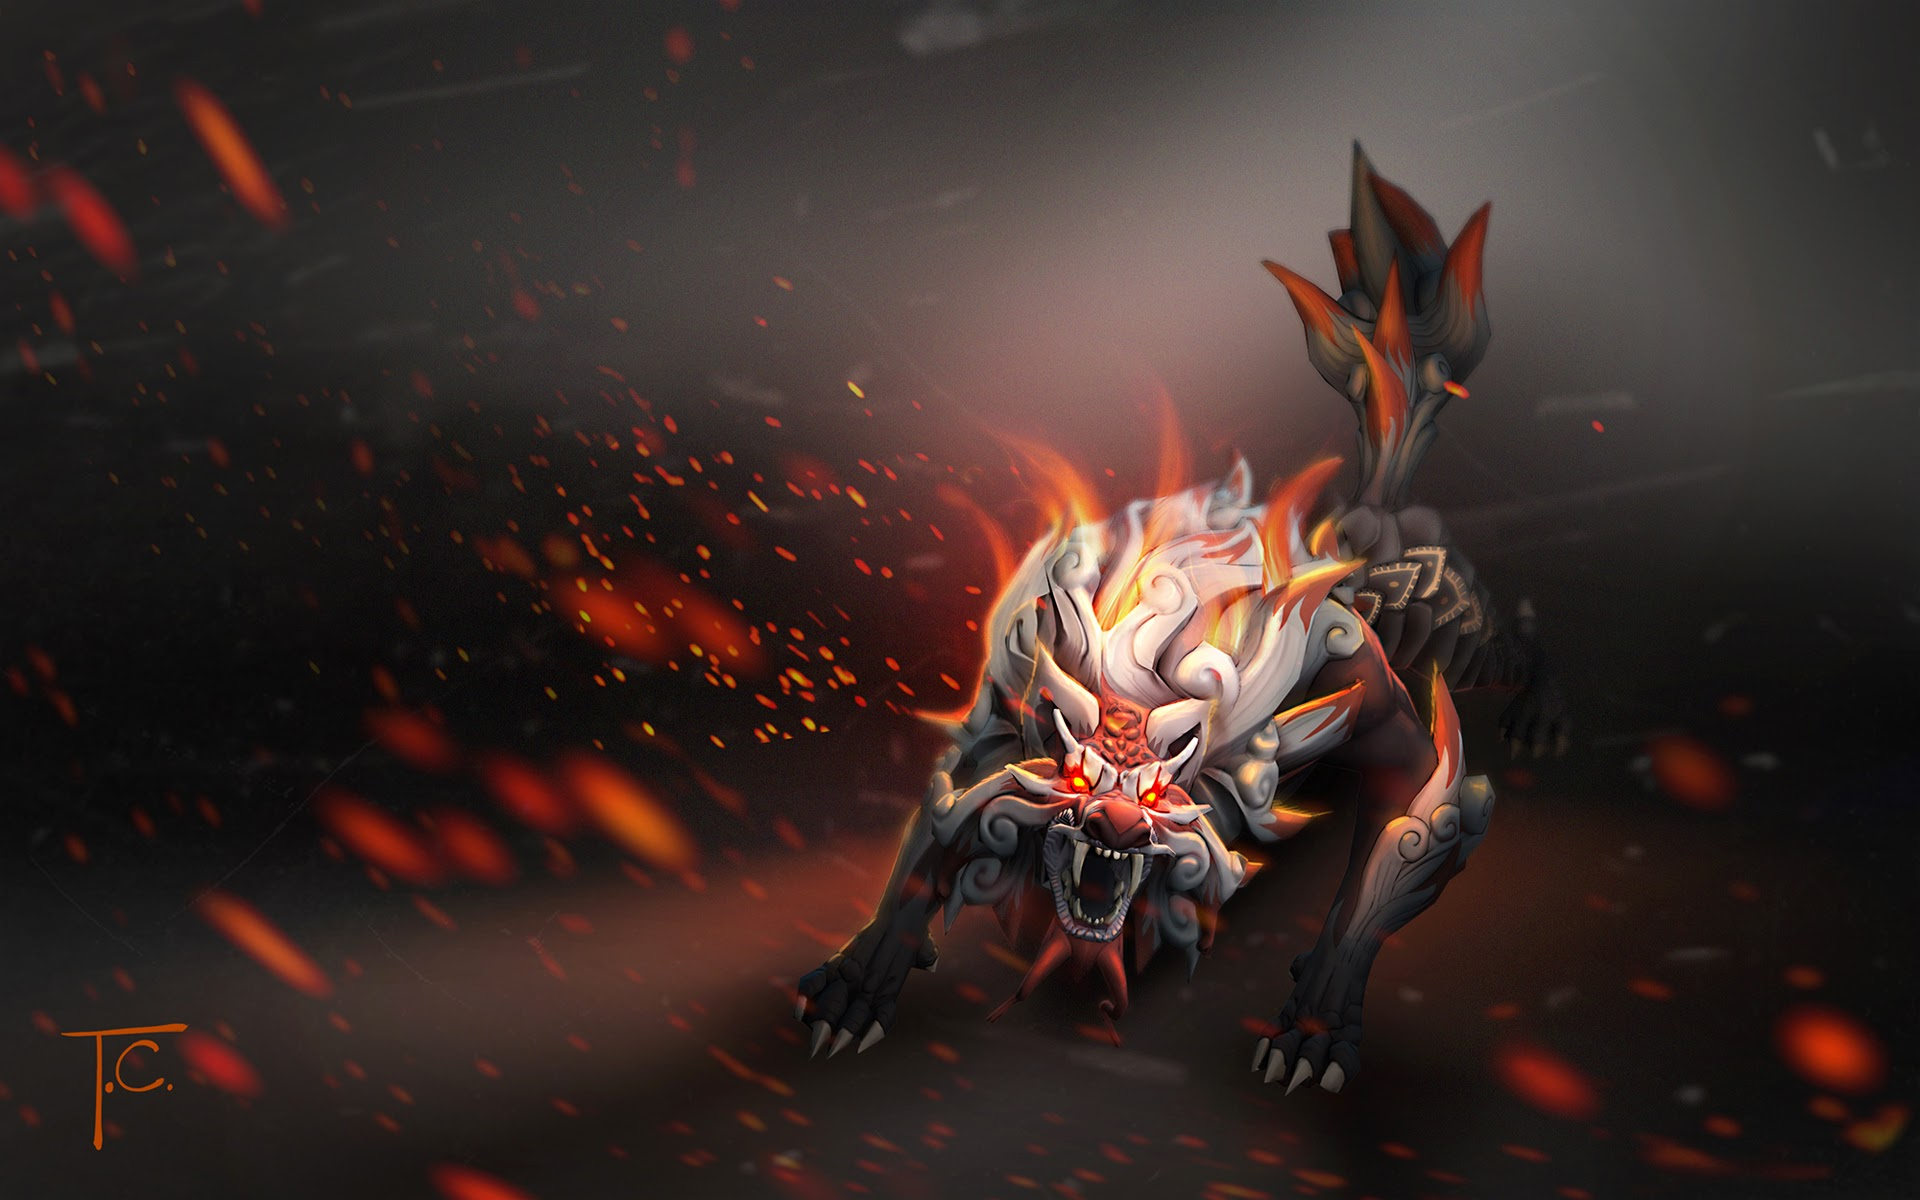 Lycanthrope Wallpaper Dota 2, Lucan  pc wallpaper